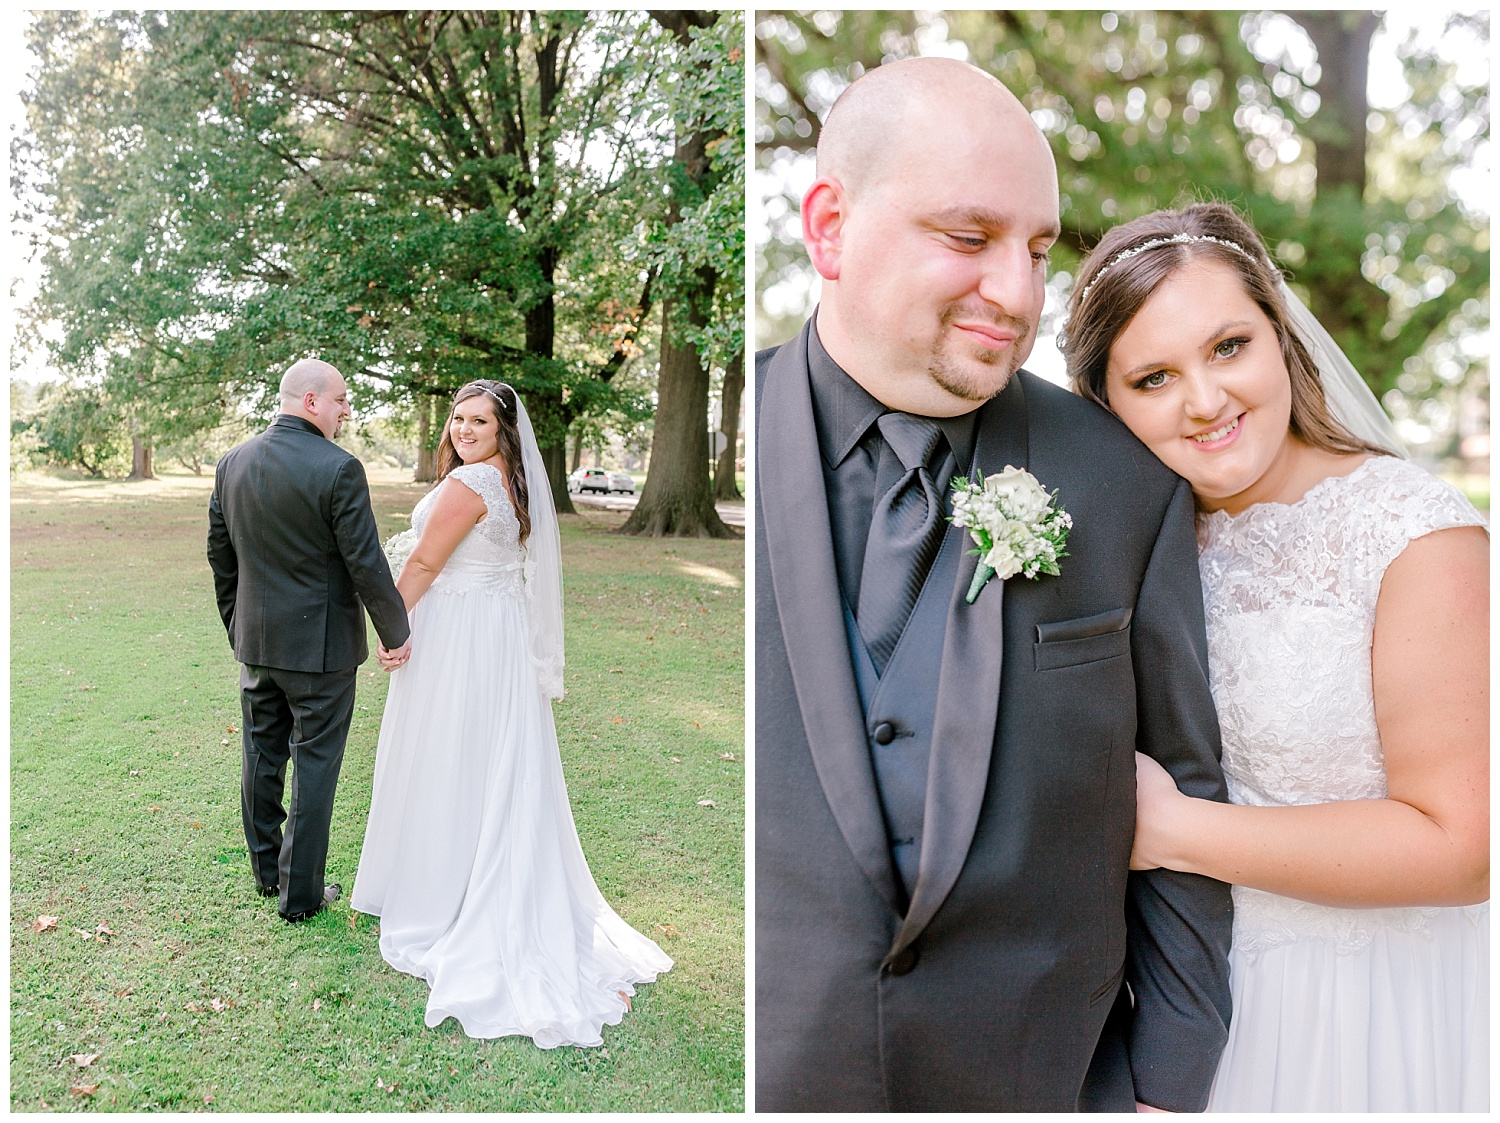 A Black and Gold Catholic Church Wedding in Wilkes Barre Pennsylvania by lehigh valley pennsylvania based wedding and lifestyle photographer Jeannie Lytle of Lytle Photography   Company (24).jpg